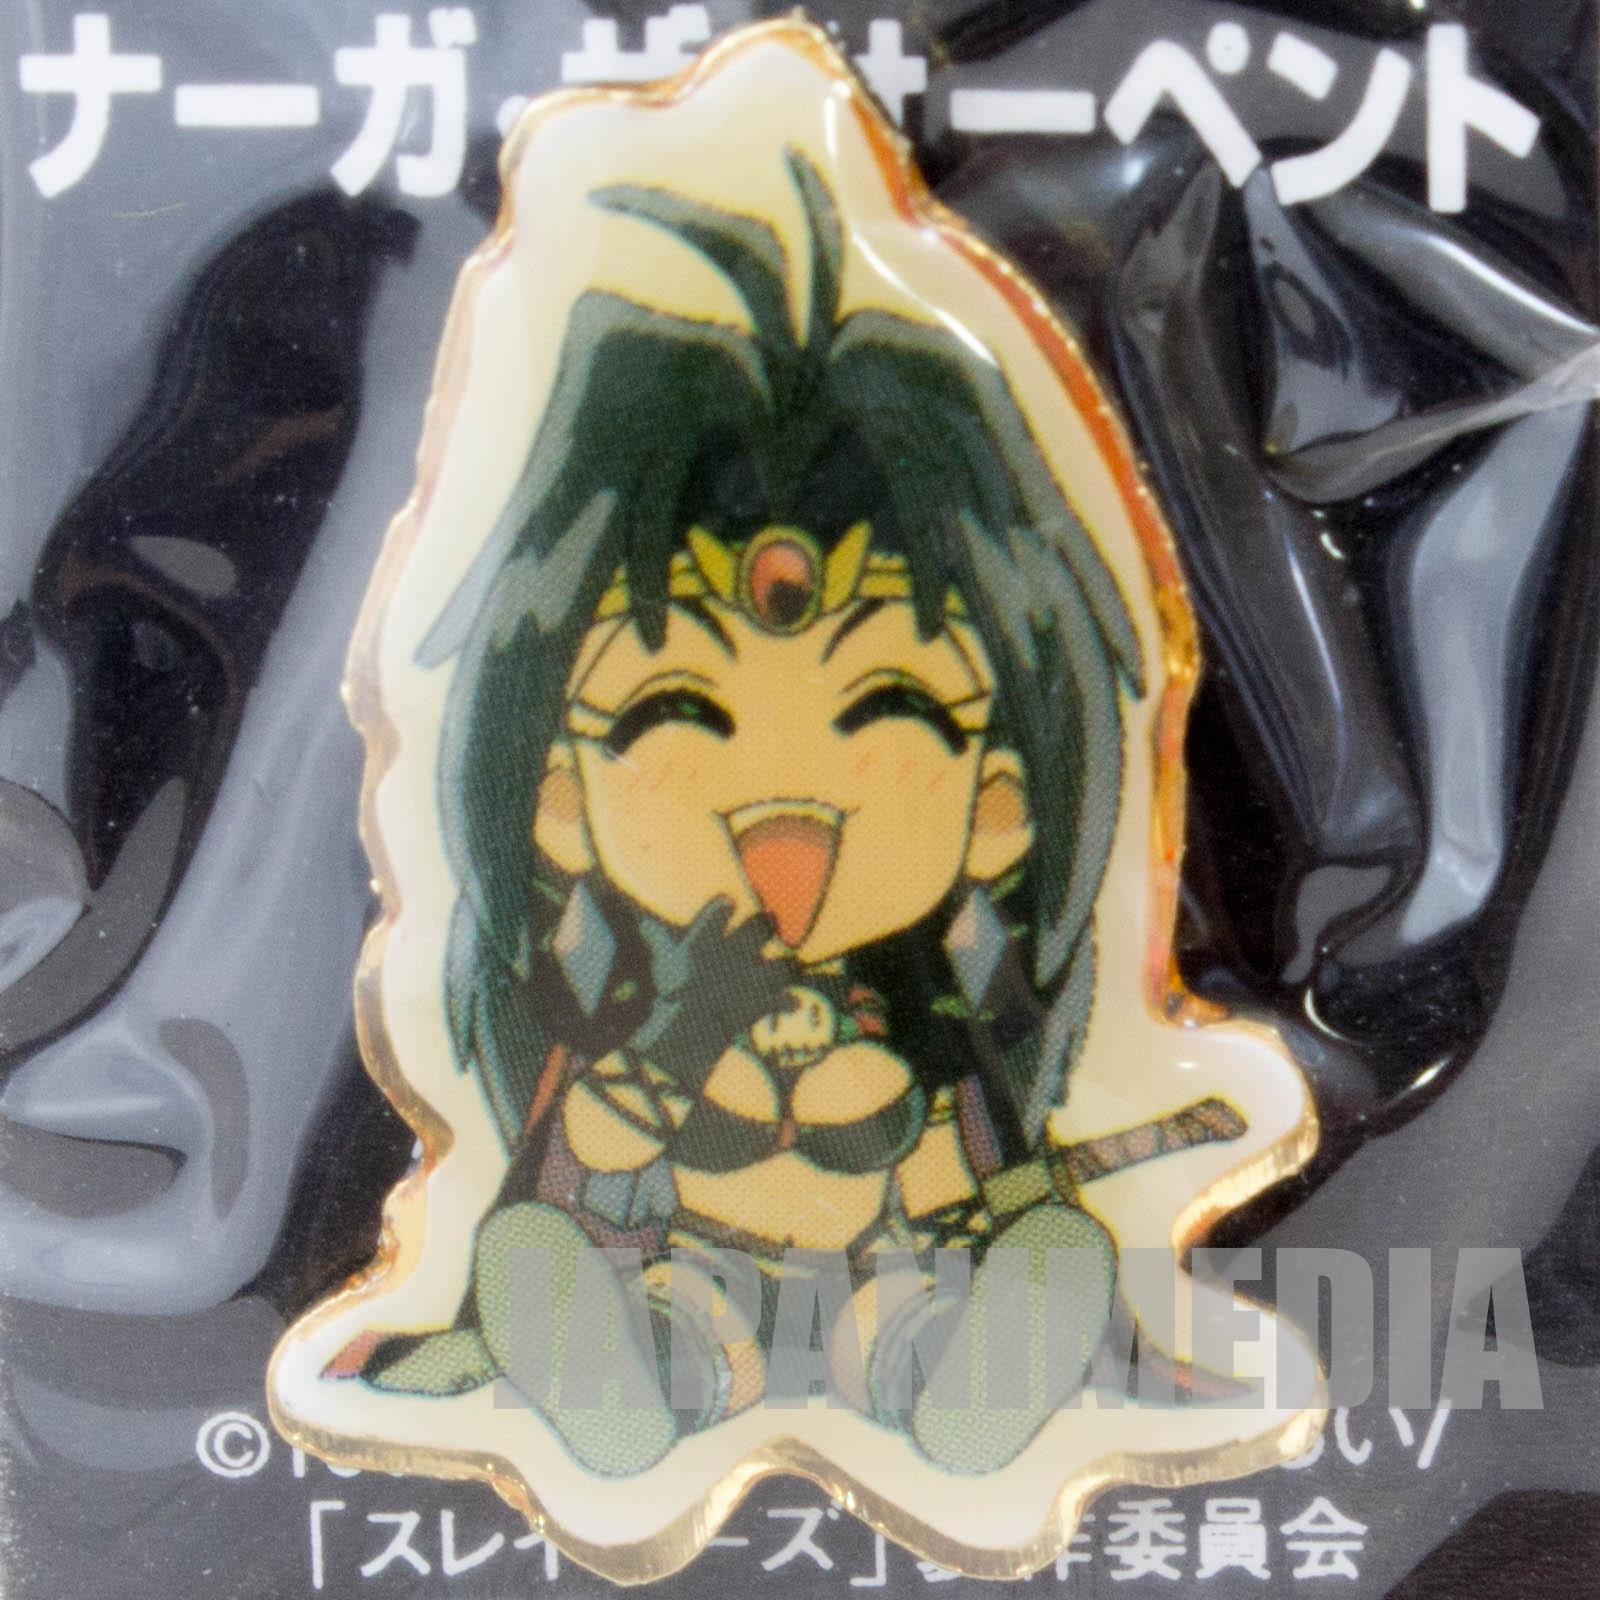 Slayers Great Naga Pins MOVIE JAPAN ANIME MANGA